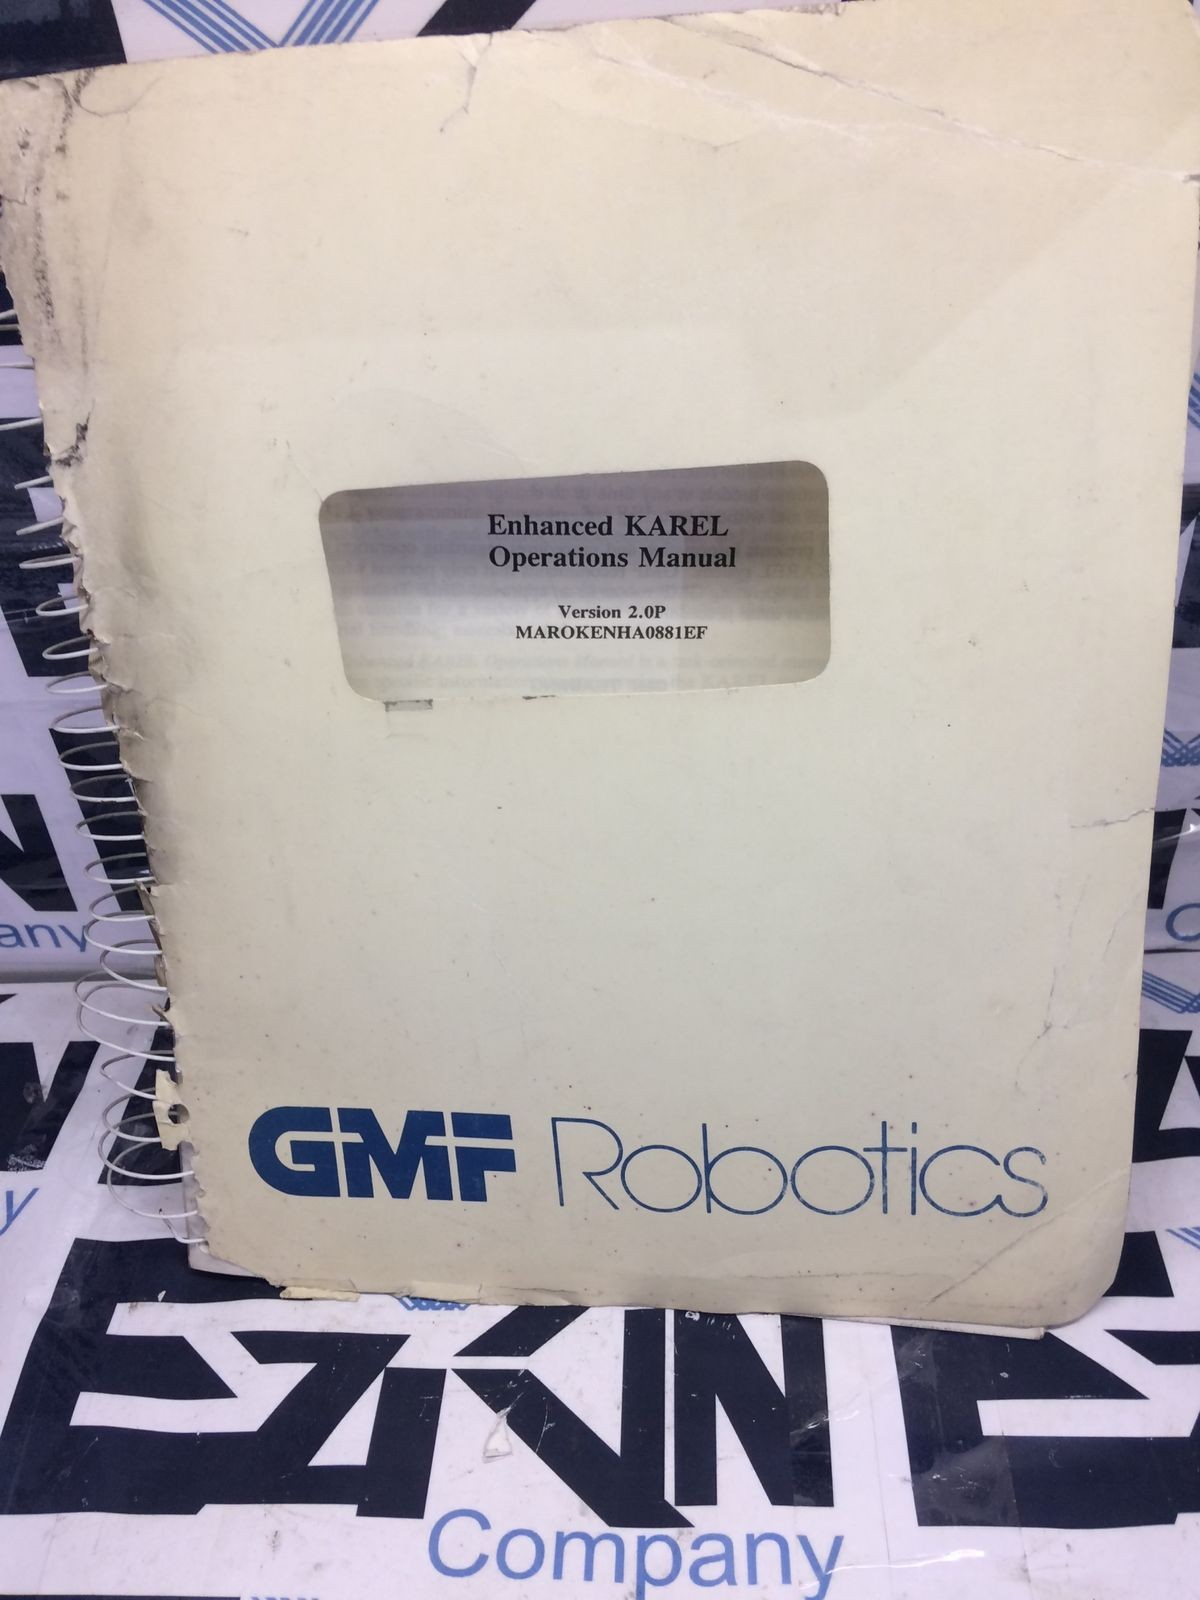 GMF Robotics Version 2.0P MAROKENHA0881EF KAREL Operations Manual